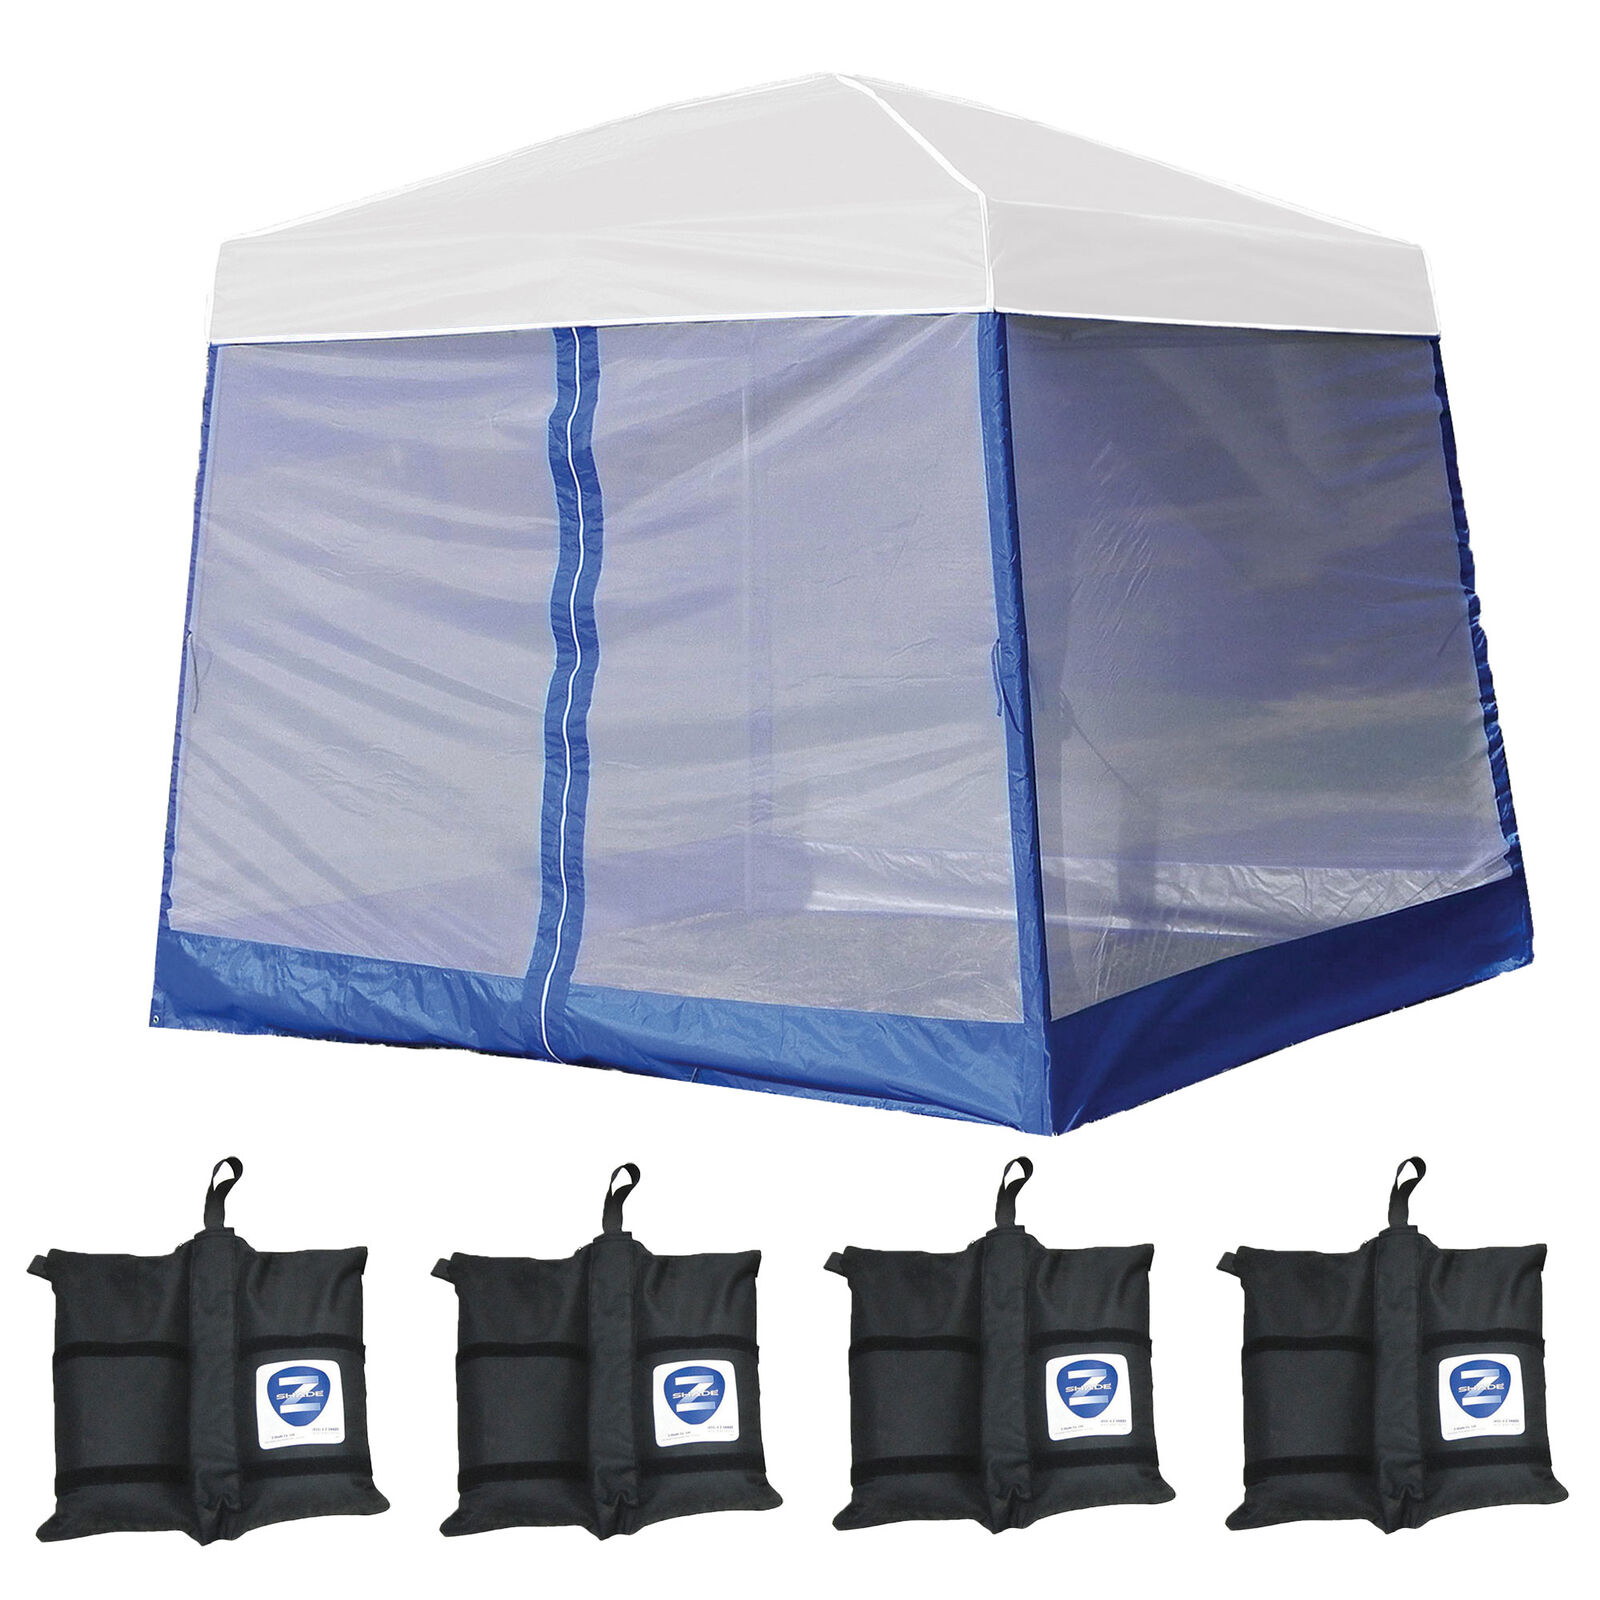 Z-Shade 10' x 10' Angled Leg Instant  White Canopy Shelter with Screen & Weights  best price